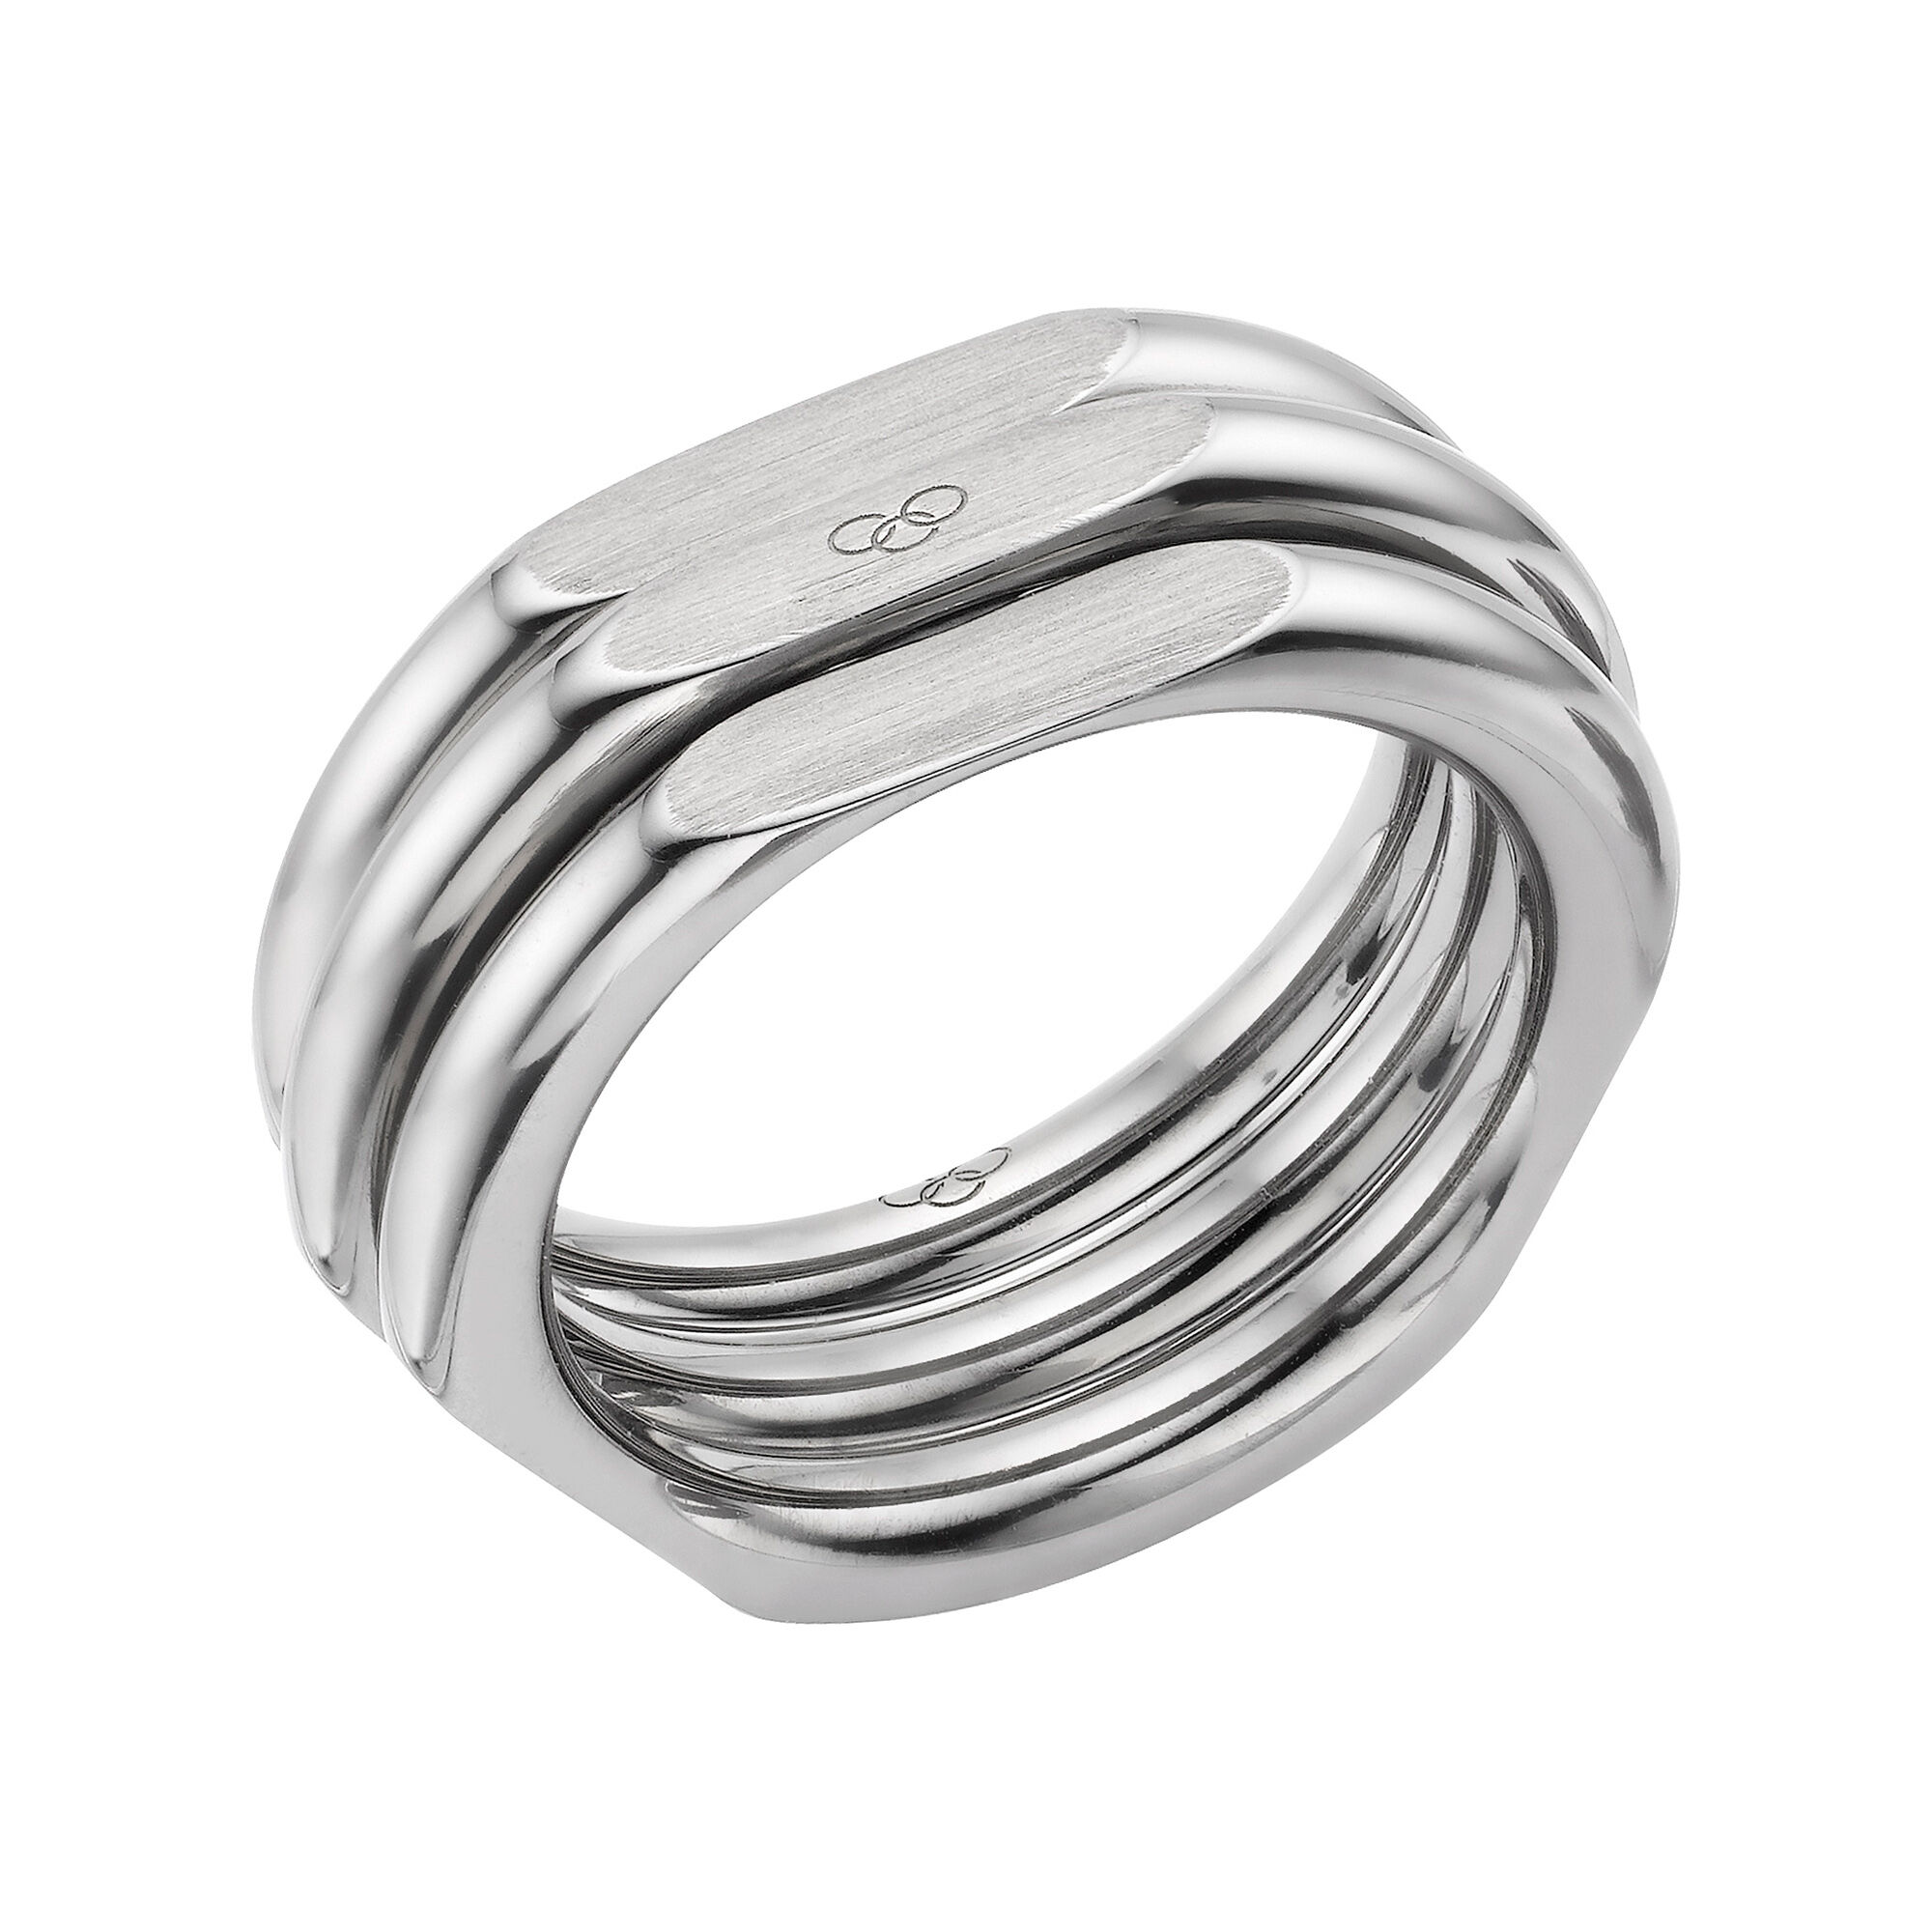 en functional london wedding ring of hires plated ruthenium links gb mens rings xl